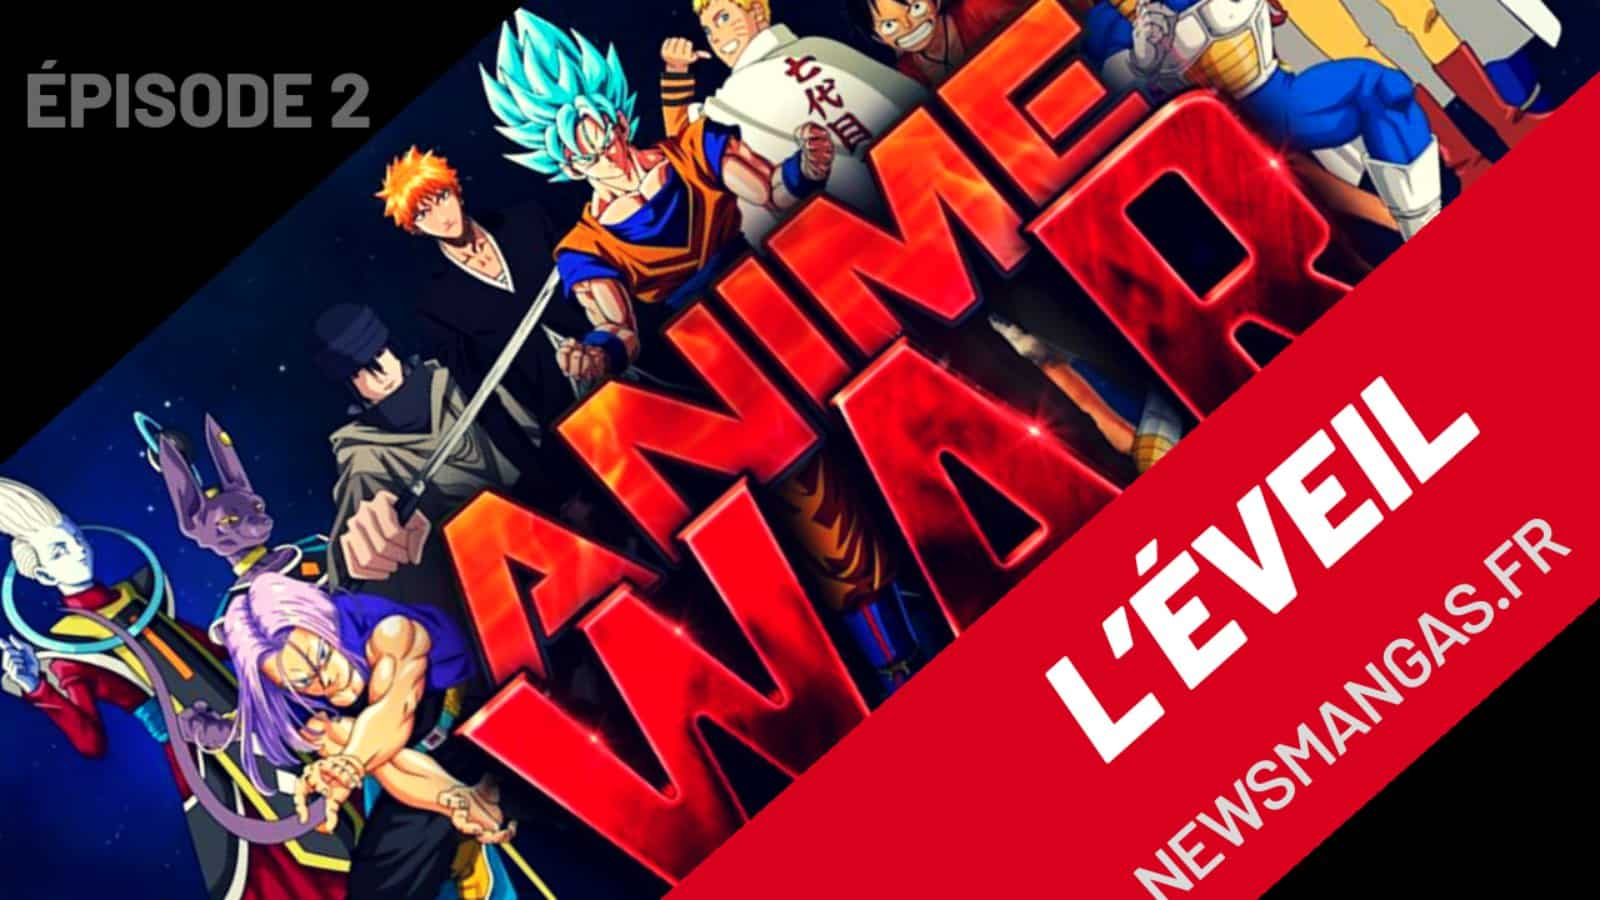 Anime War episode 2 vostfr 3